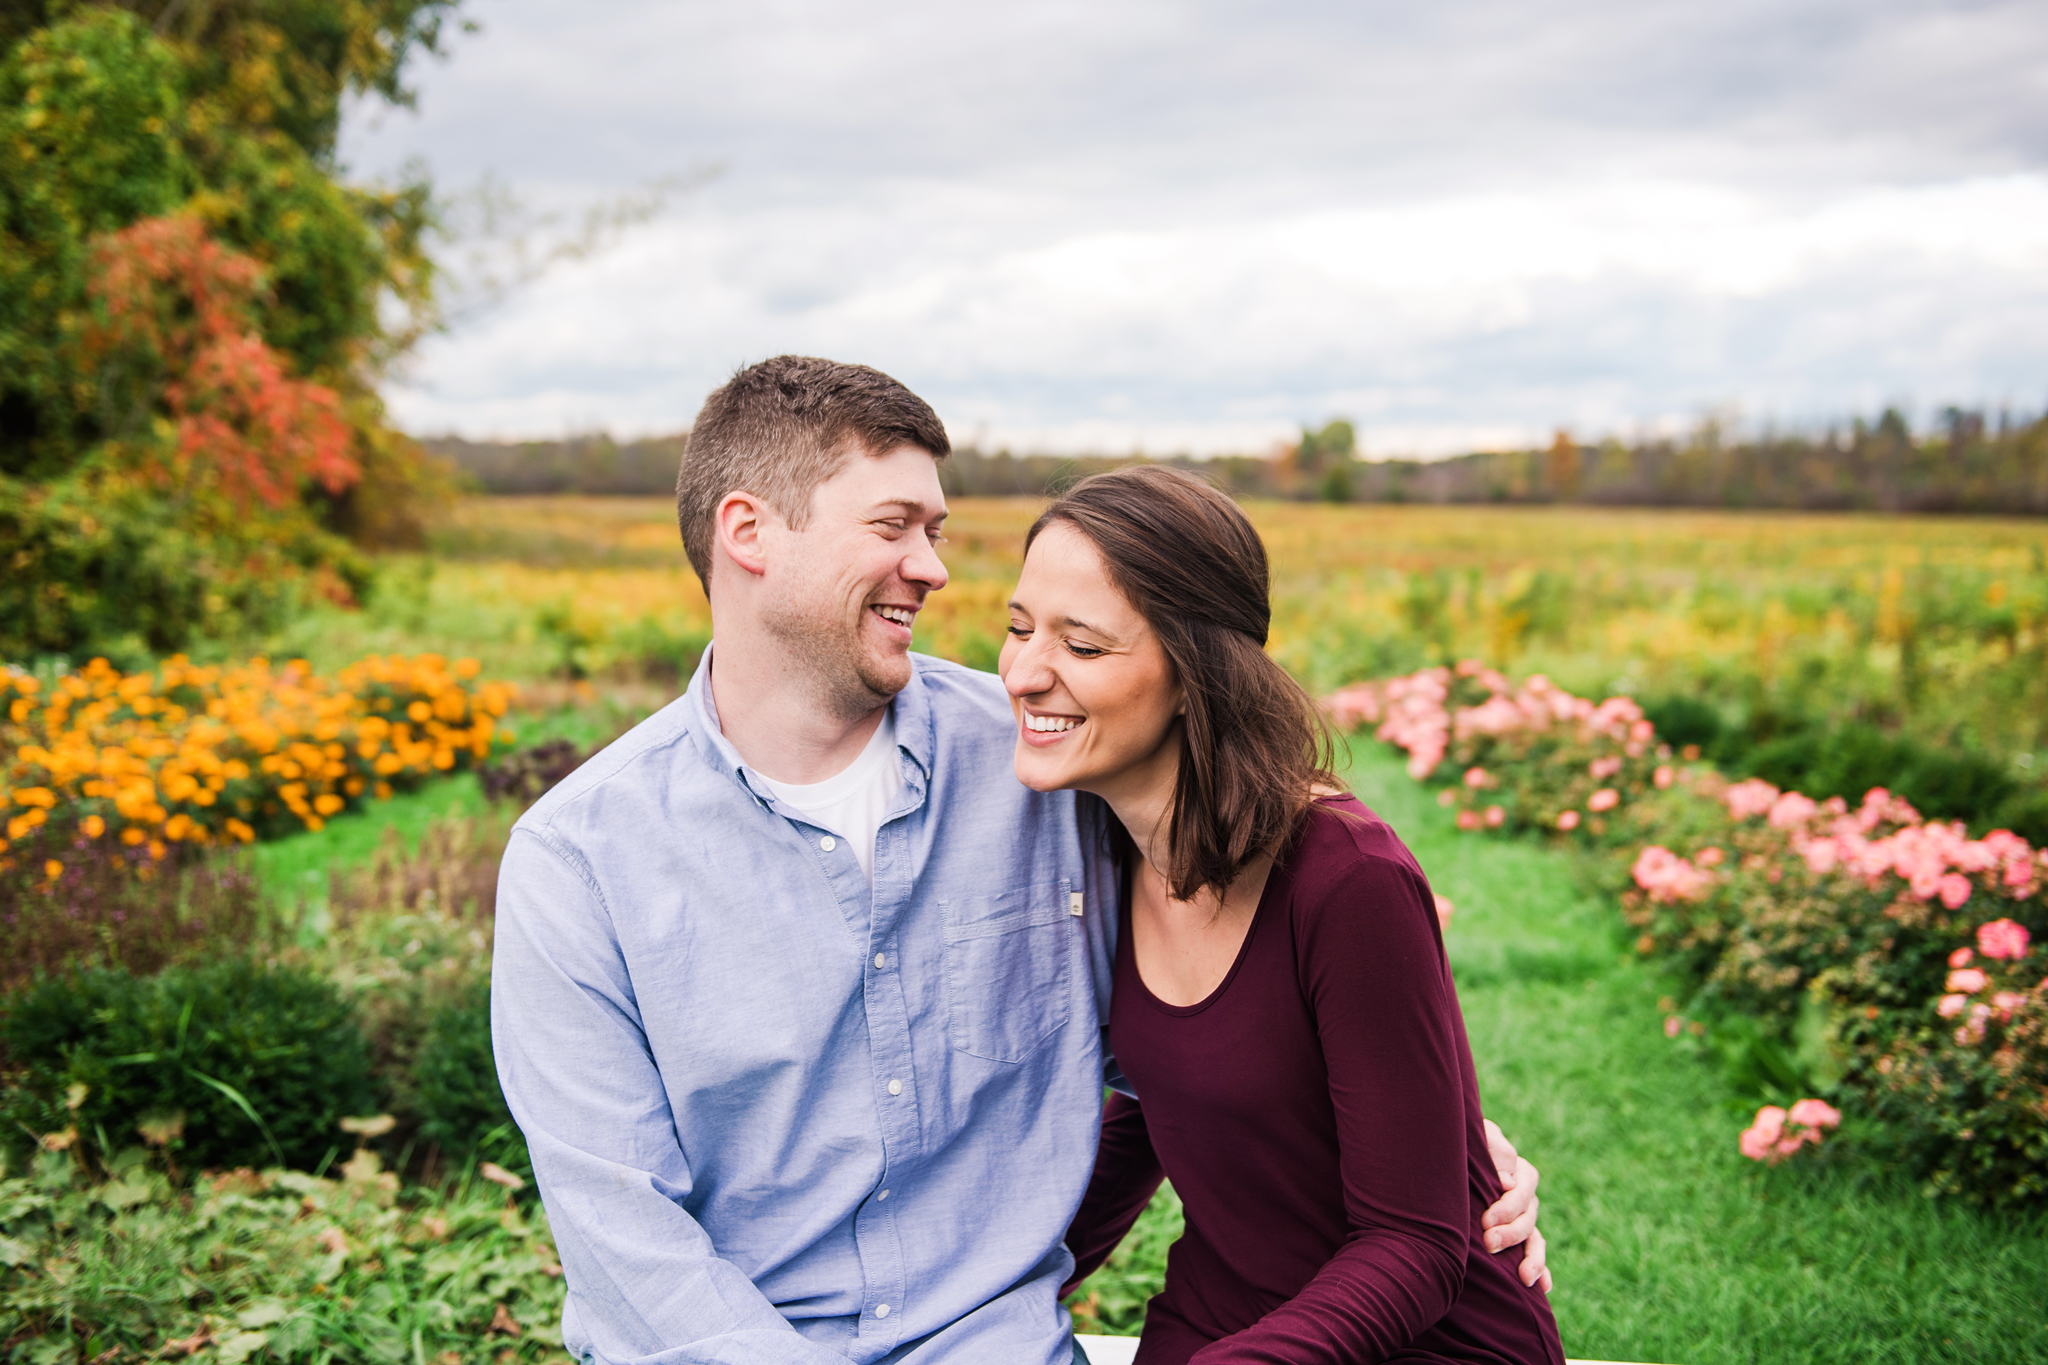 Hurd_Orchards_Rochester_Engagement_Session_JILL_STUDIO_Rochester_NY_Photographer_DSC_2054.jpg